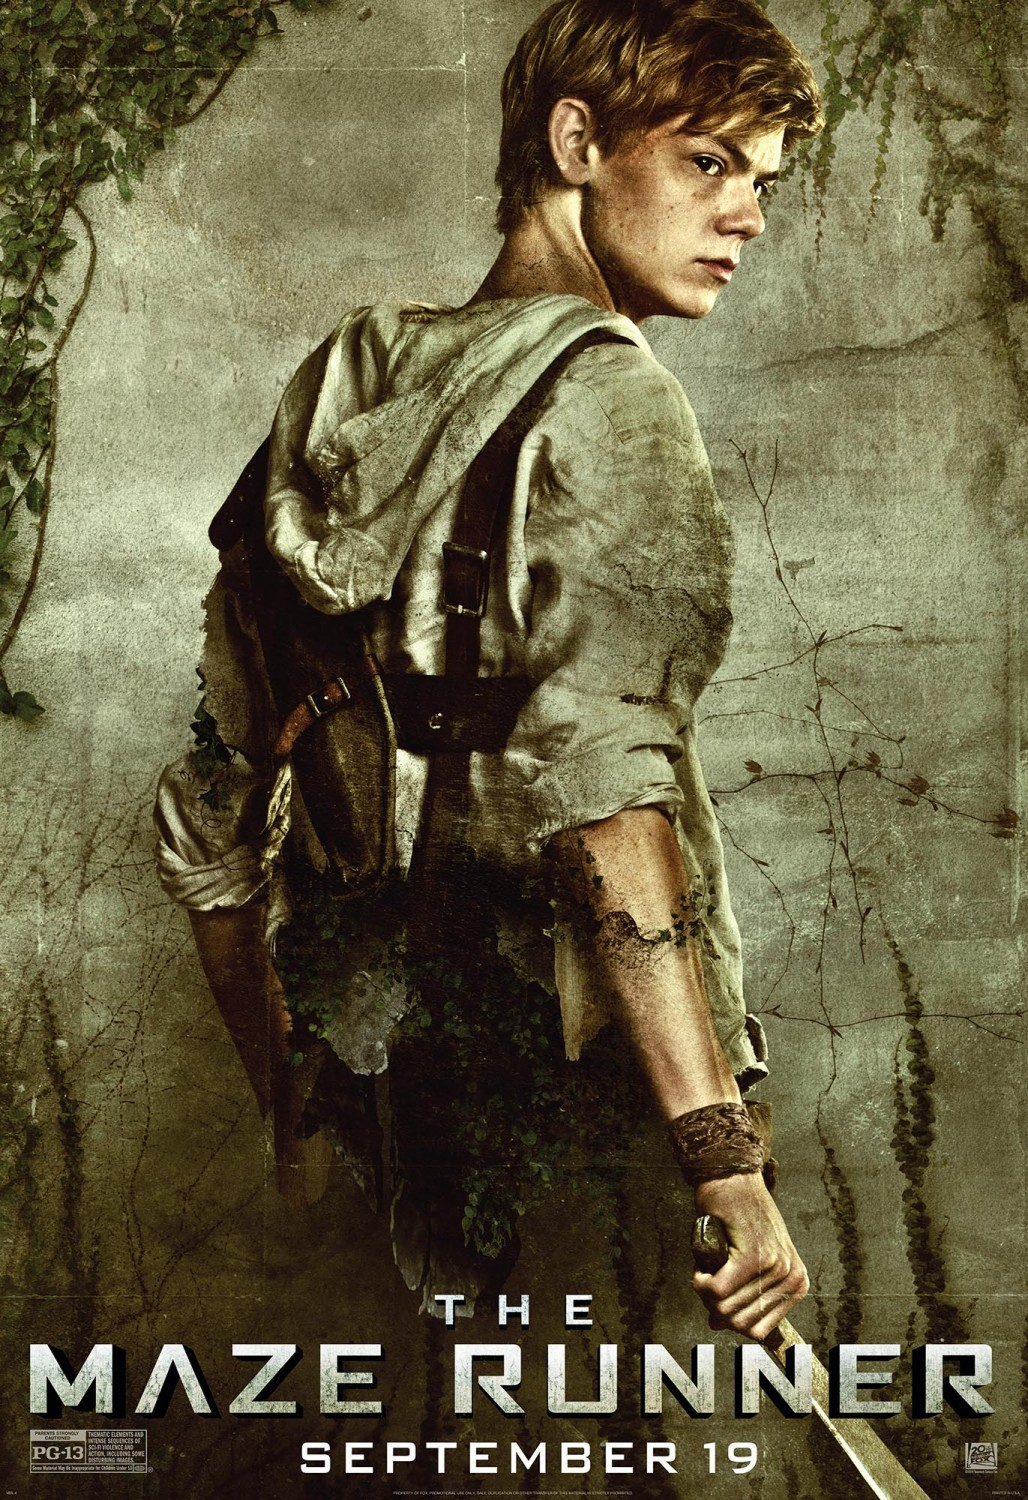 Five New 'The Maze Runner' Character Posters Revealed